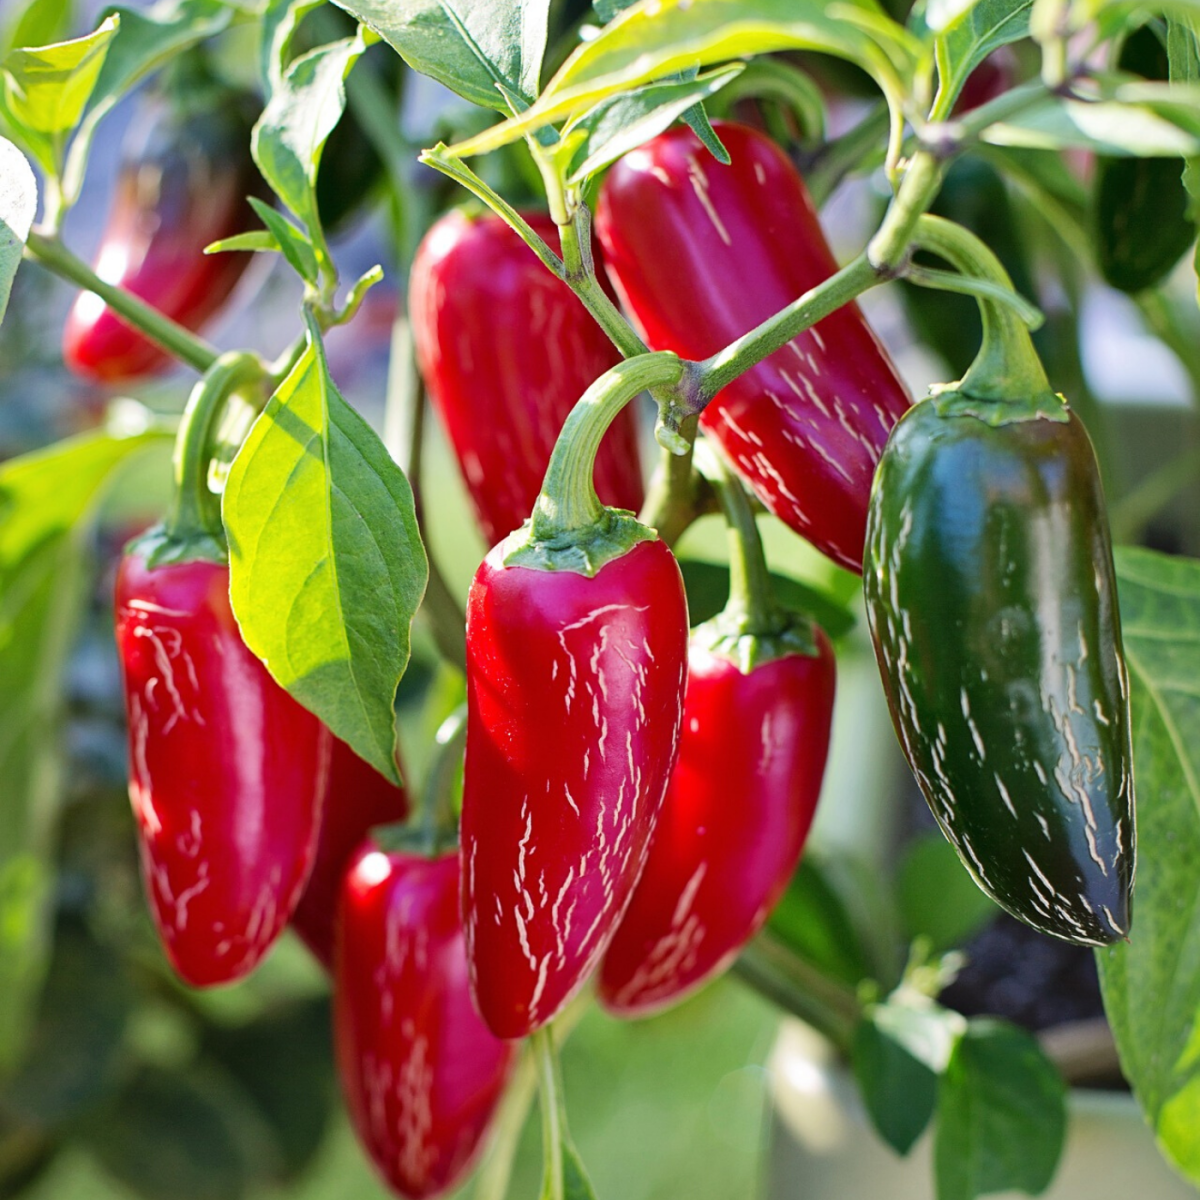 If you wait long enough to harvest, your peppers may turn red. Harvesting them when they are green, however, will promote new growth and leave you with more peppers overall.